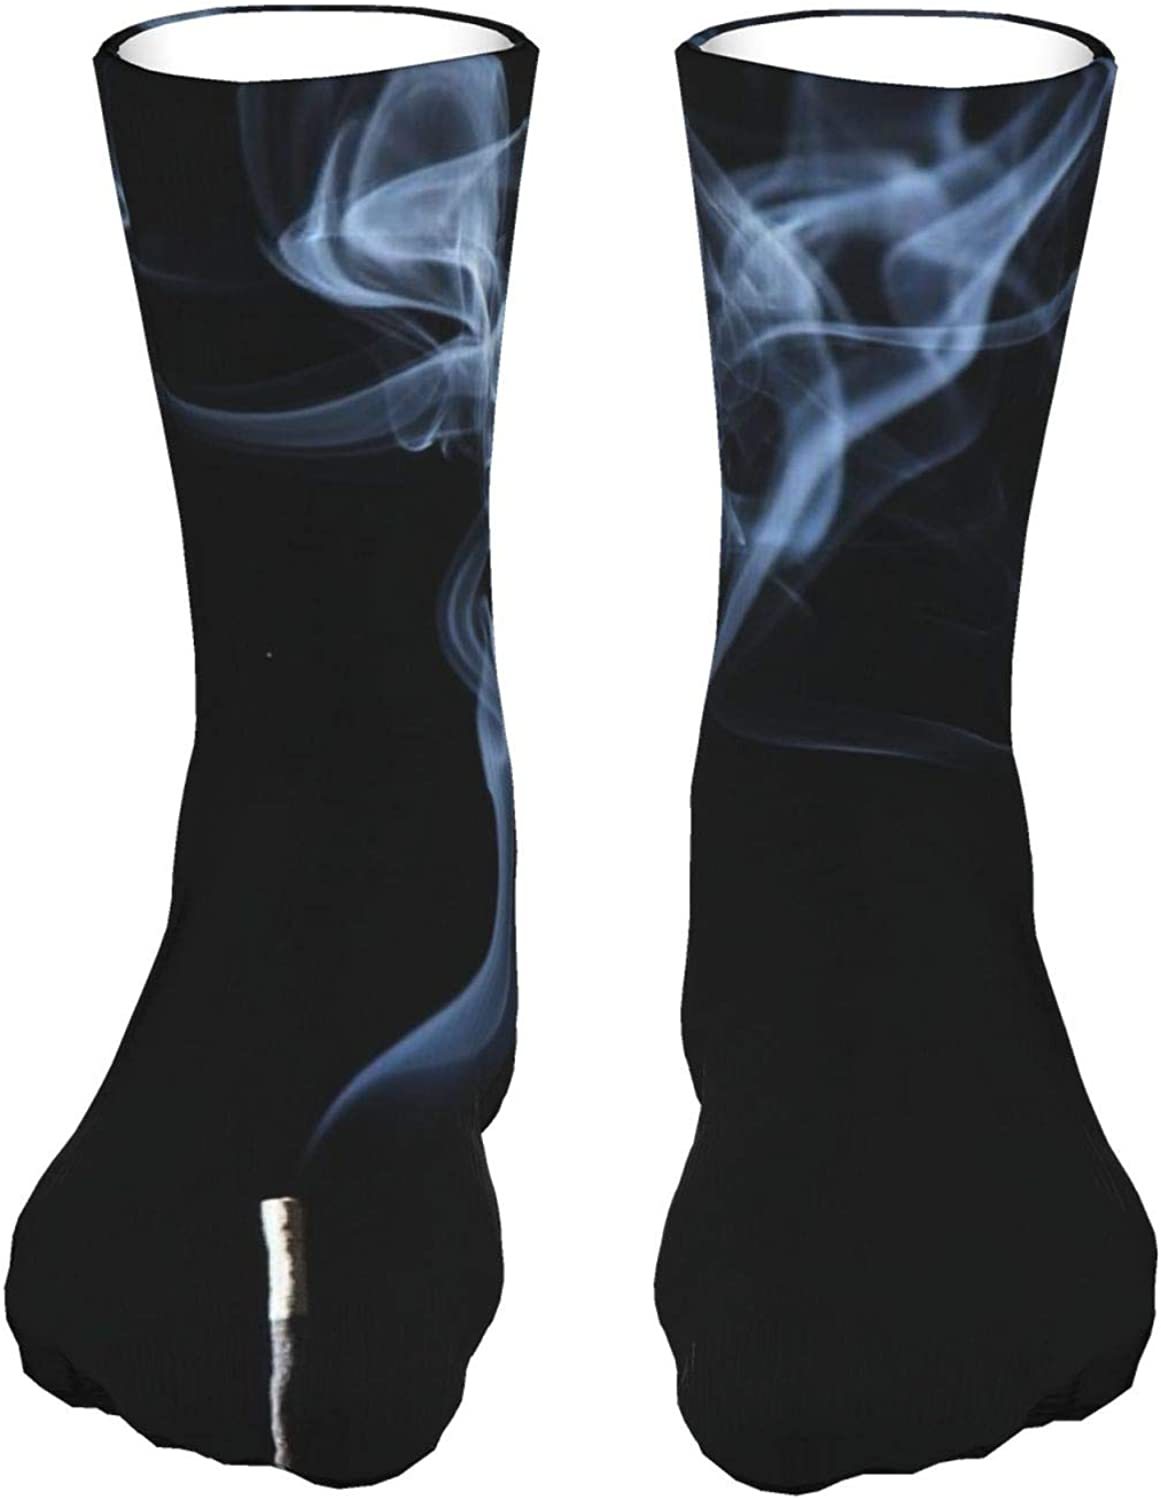 Suicide free Max 71% OFF Prevention Awareness Live Sockings Loveteen'S Boy'S Soft